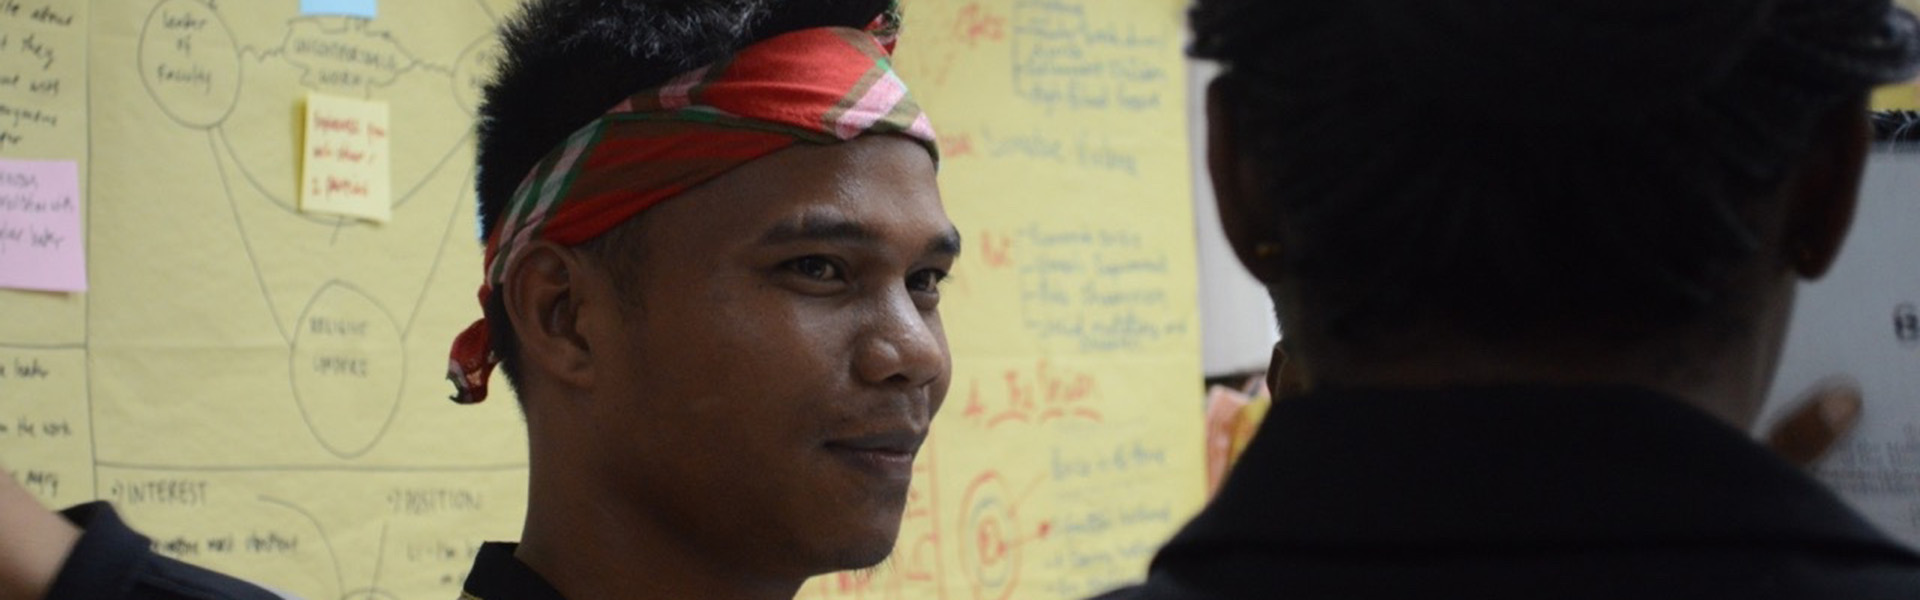 Gebert Andang wearing tribal head scarf in classroom at MPI training